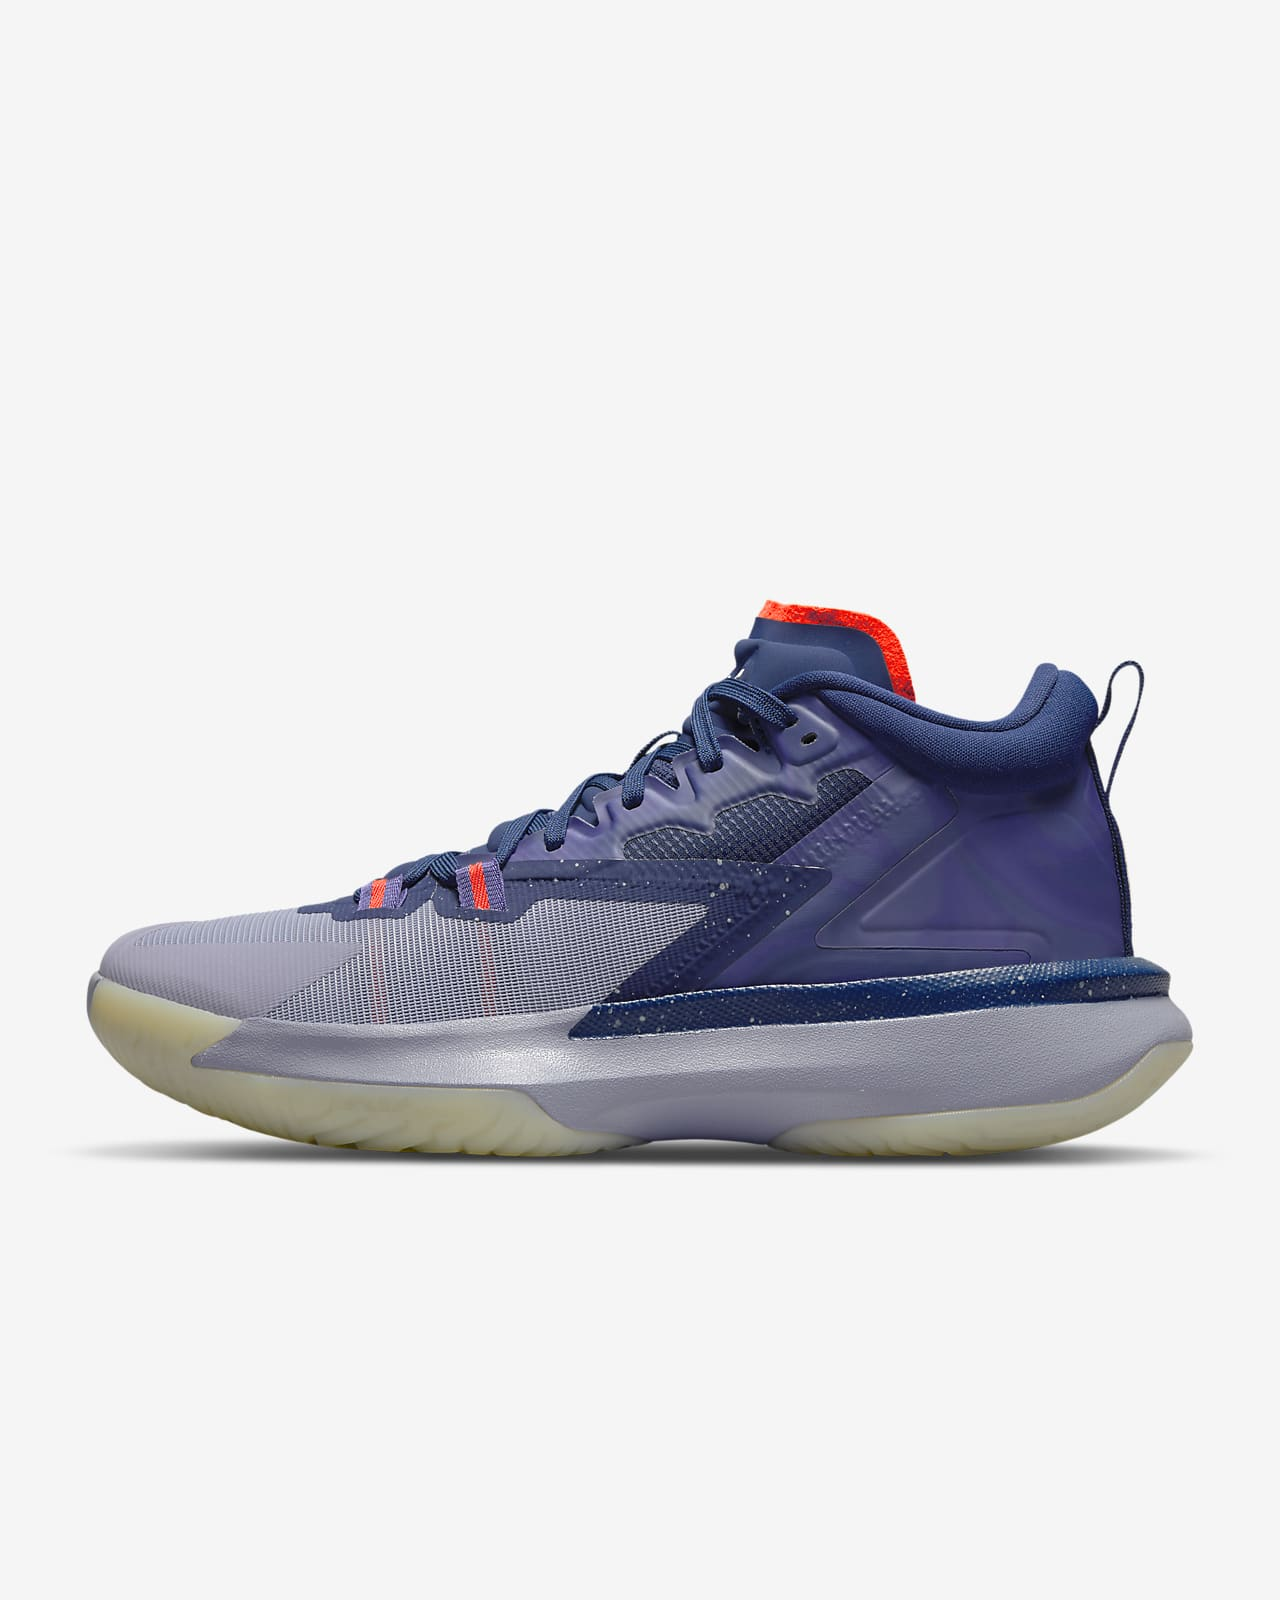 Zion 1 Basketball Shoes